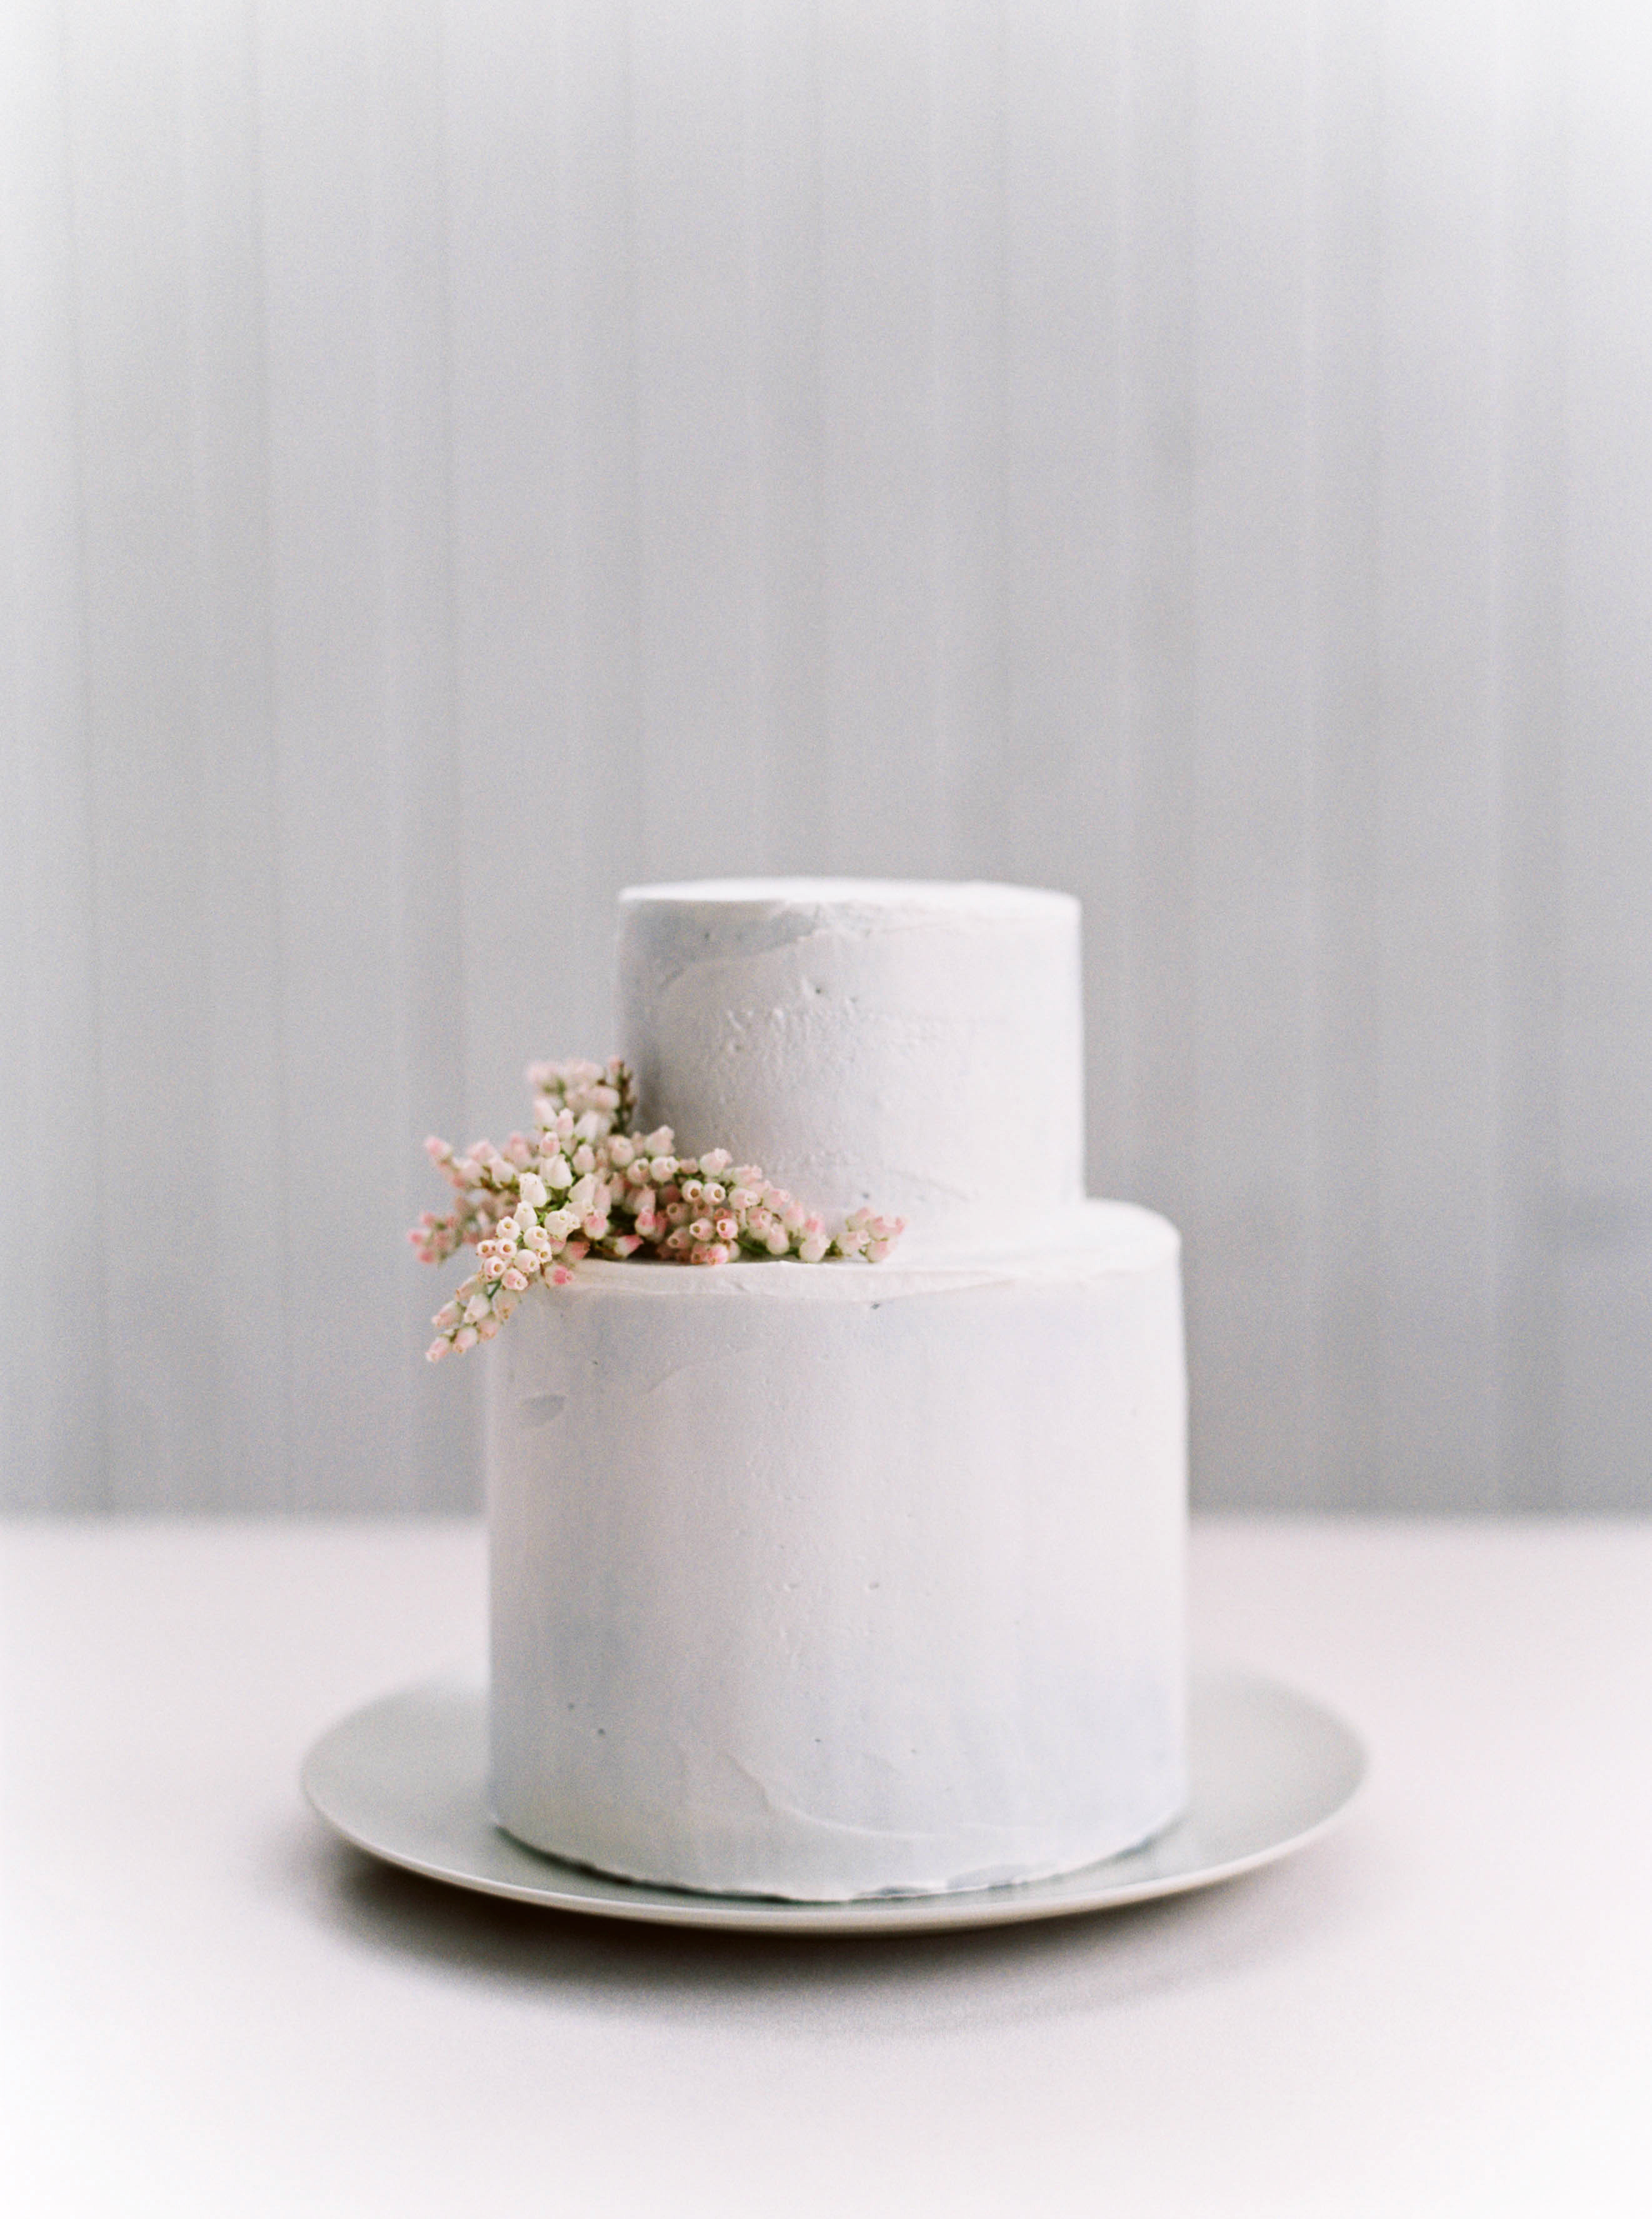 floral wedding cakes maria lamb white simple clean classy